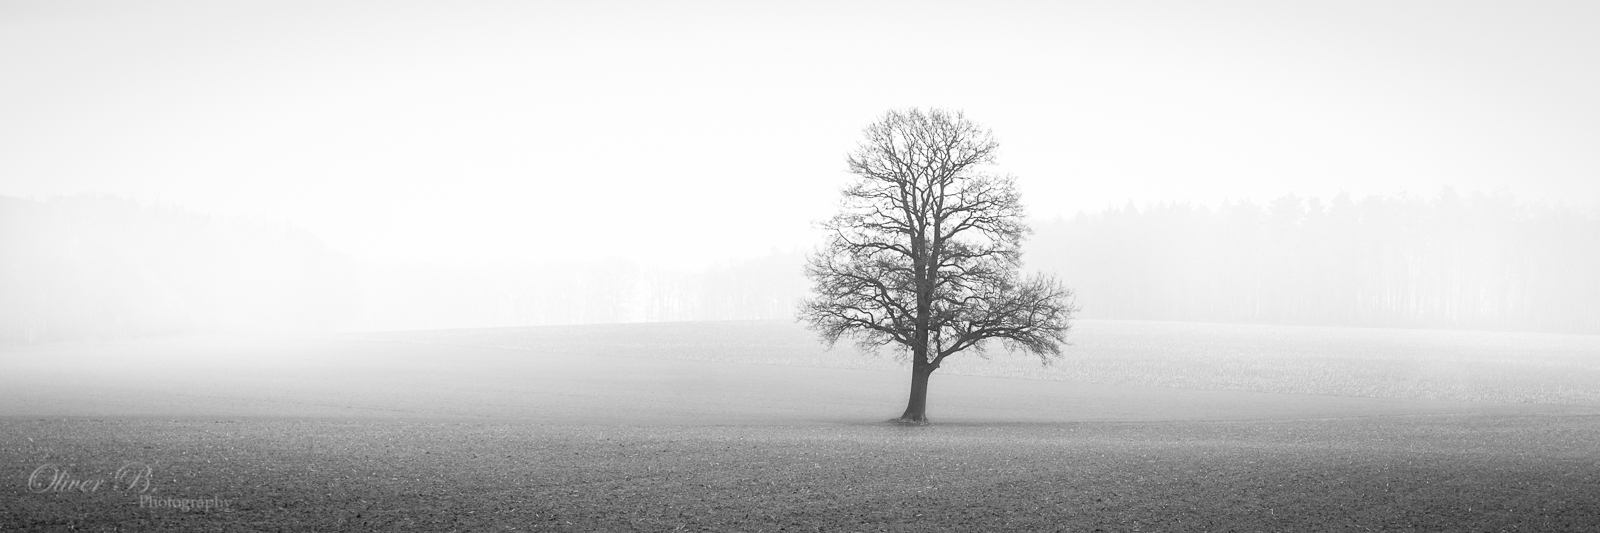 Just another dreary day by OliverBPhotography